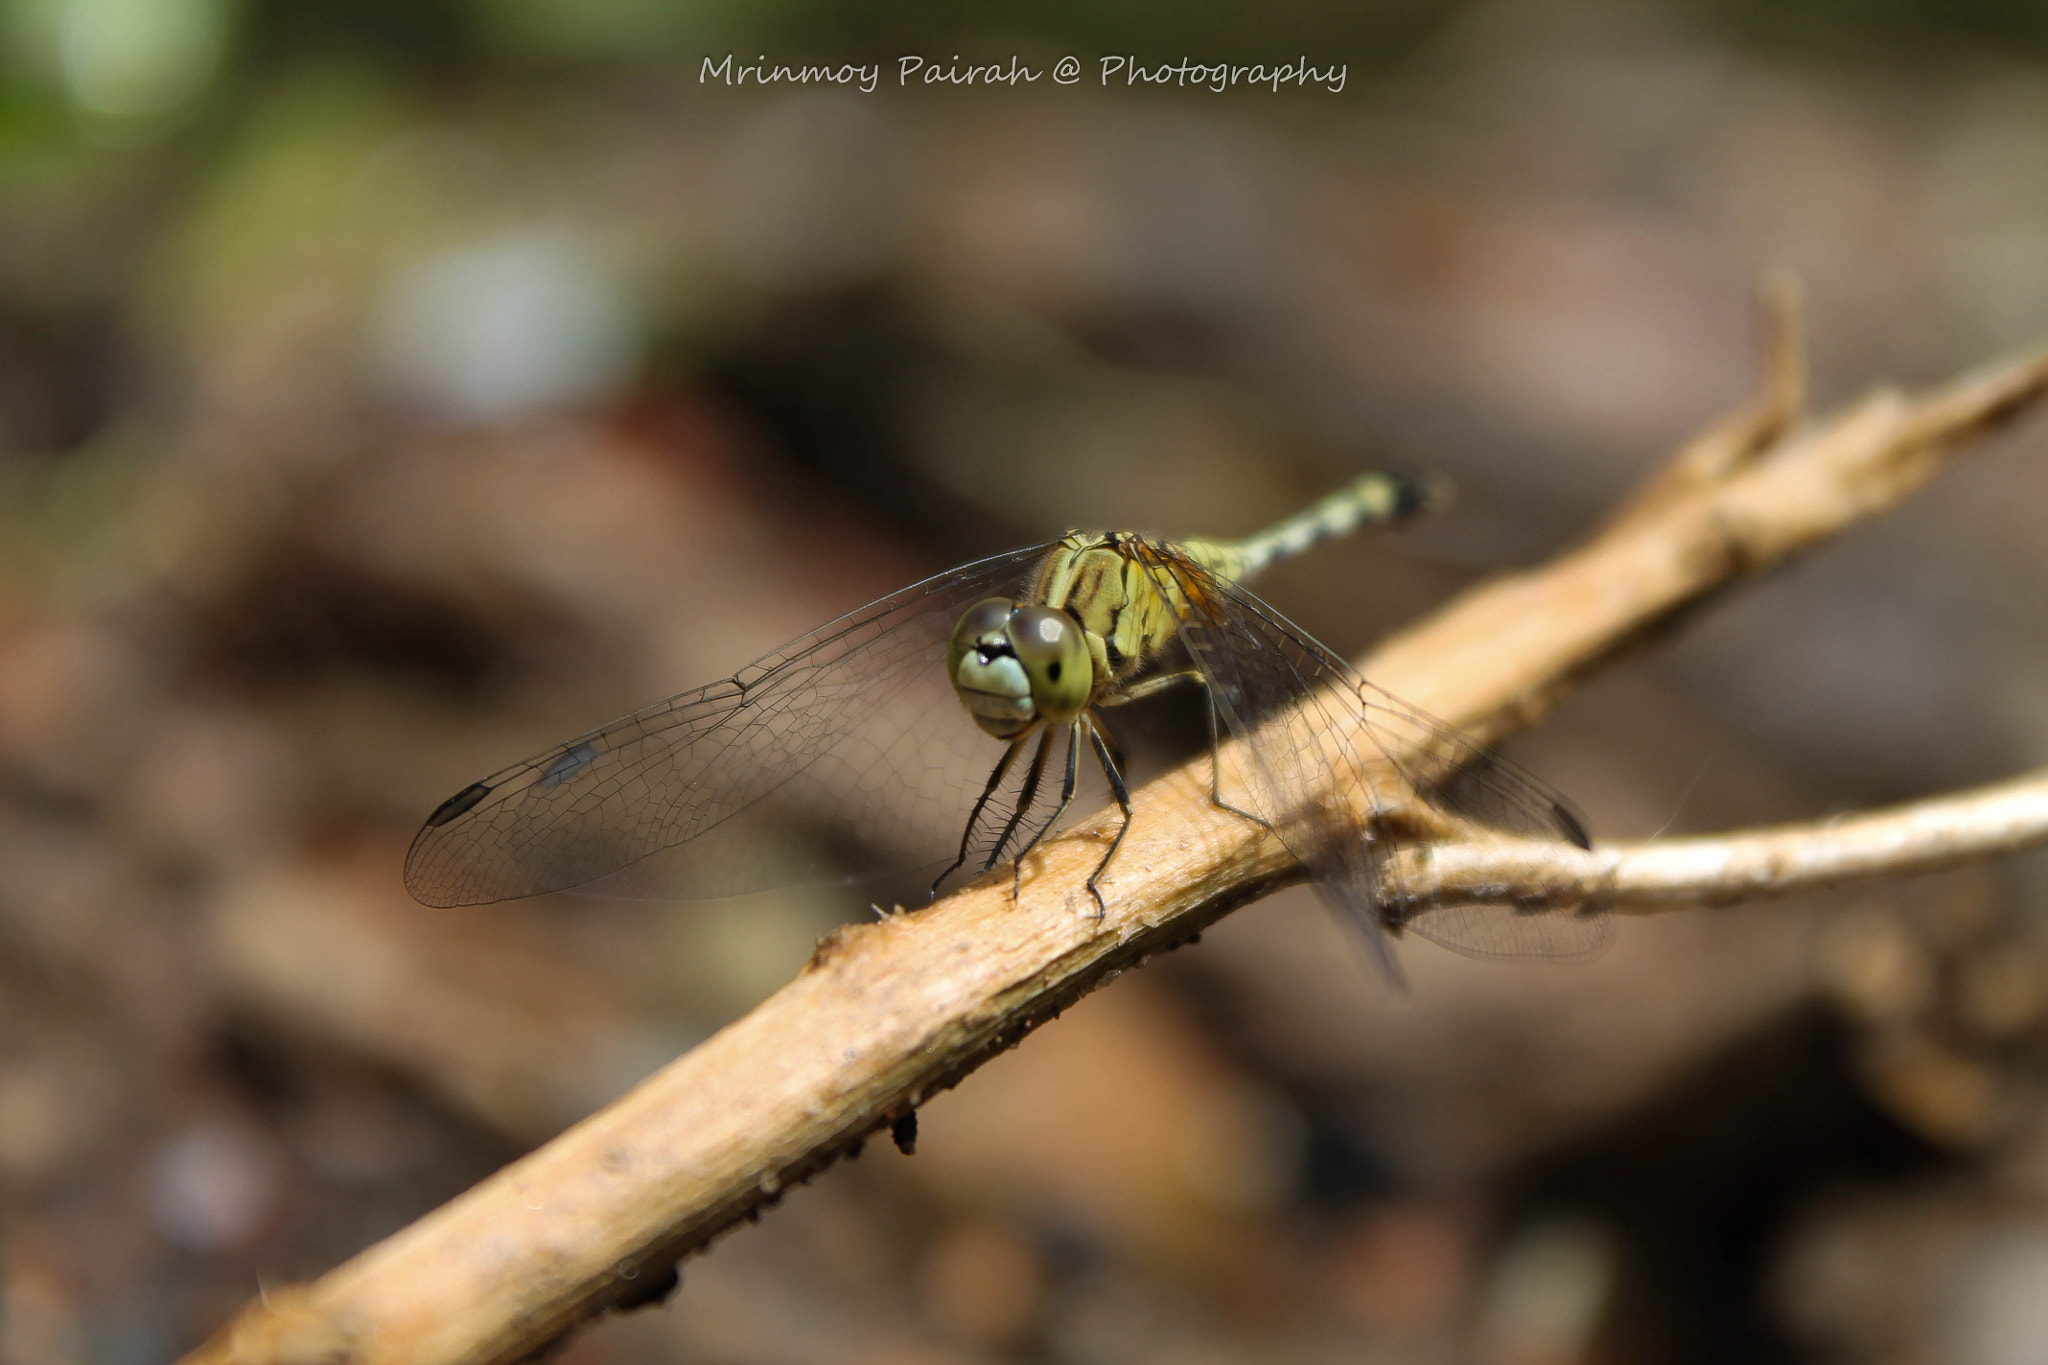 Photograph Dragon fly by Mrinmoy Pairah on 500px